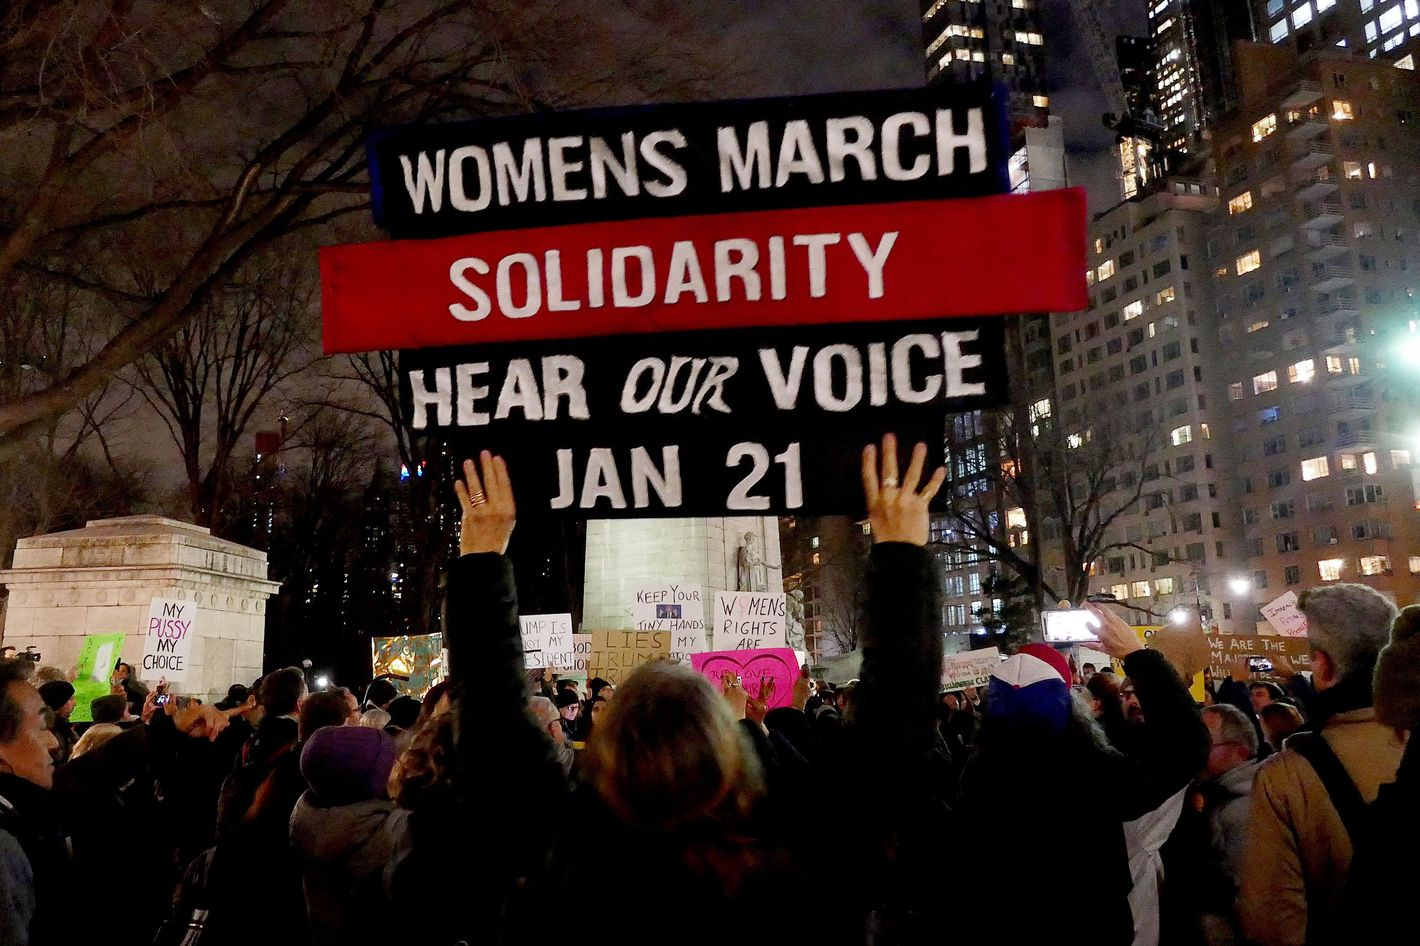 Women will continue to stand up for our rights after march new york daily news - Women Will Continue To Stand Up For Our Rights After March New York Daily News 19